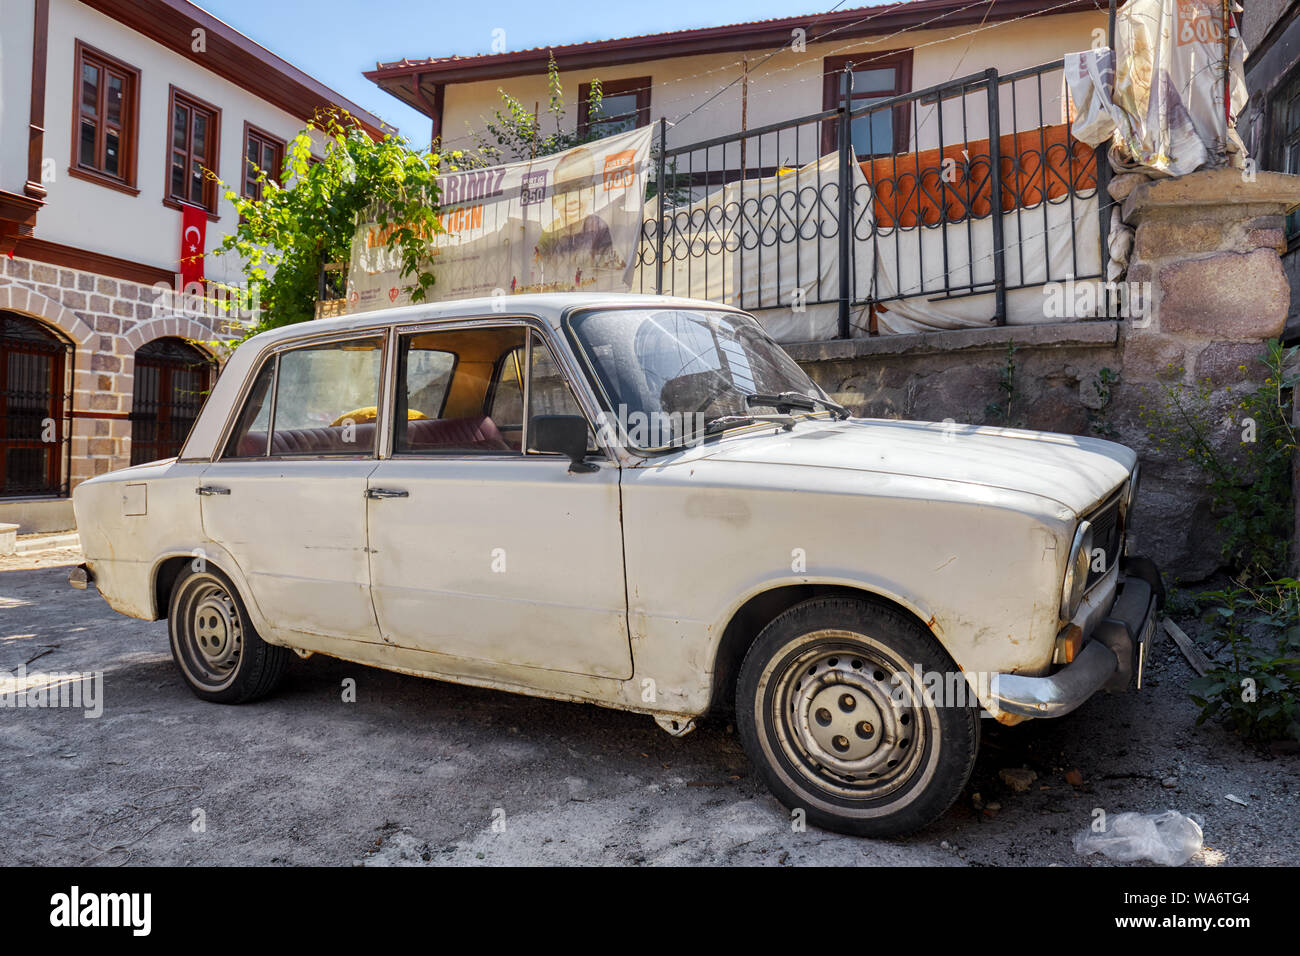 Vintage scrap Fiat 124 car parked in front of a shanty house in the ghetto of Hamamonu district, Ankara, Turkey. Stock Photo